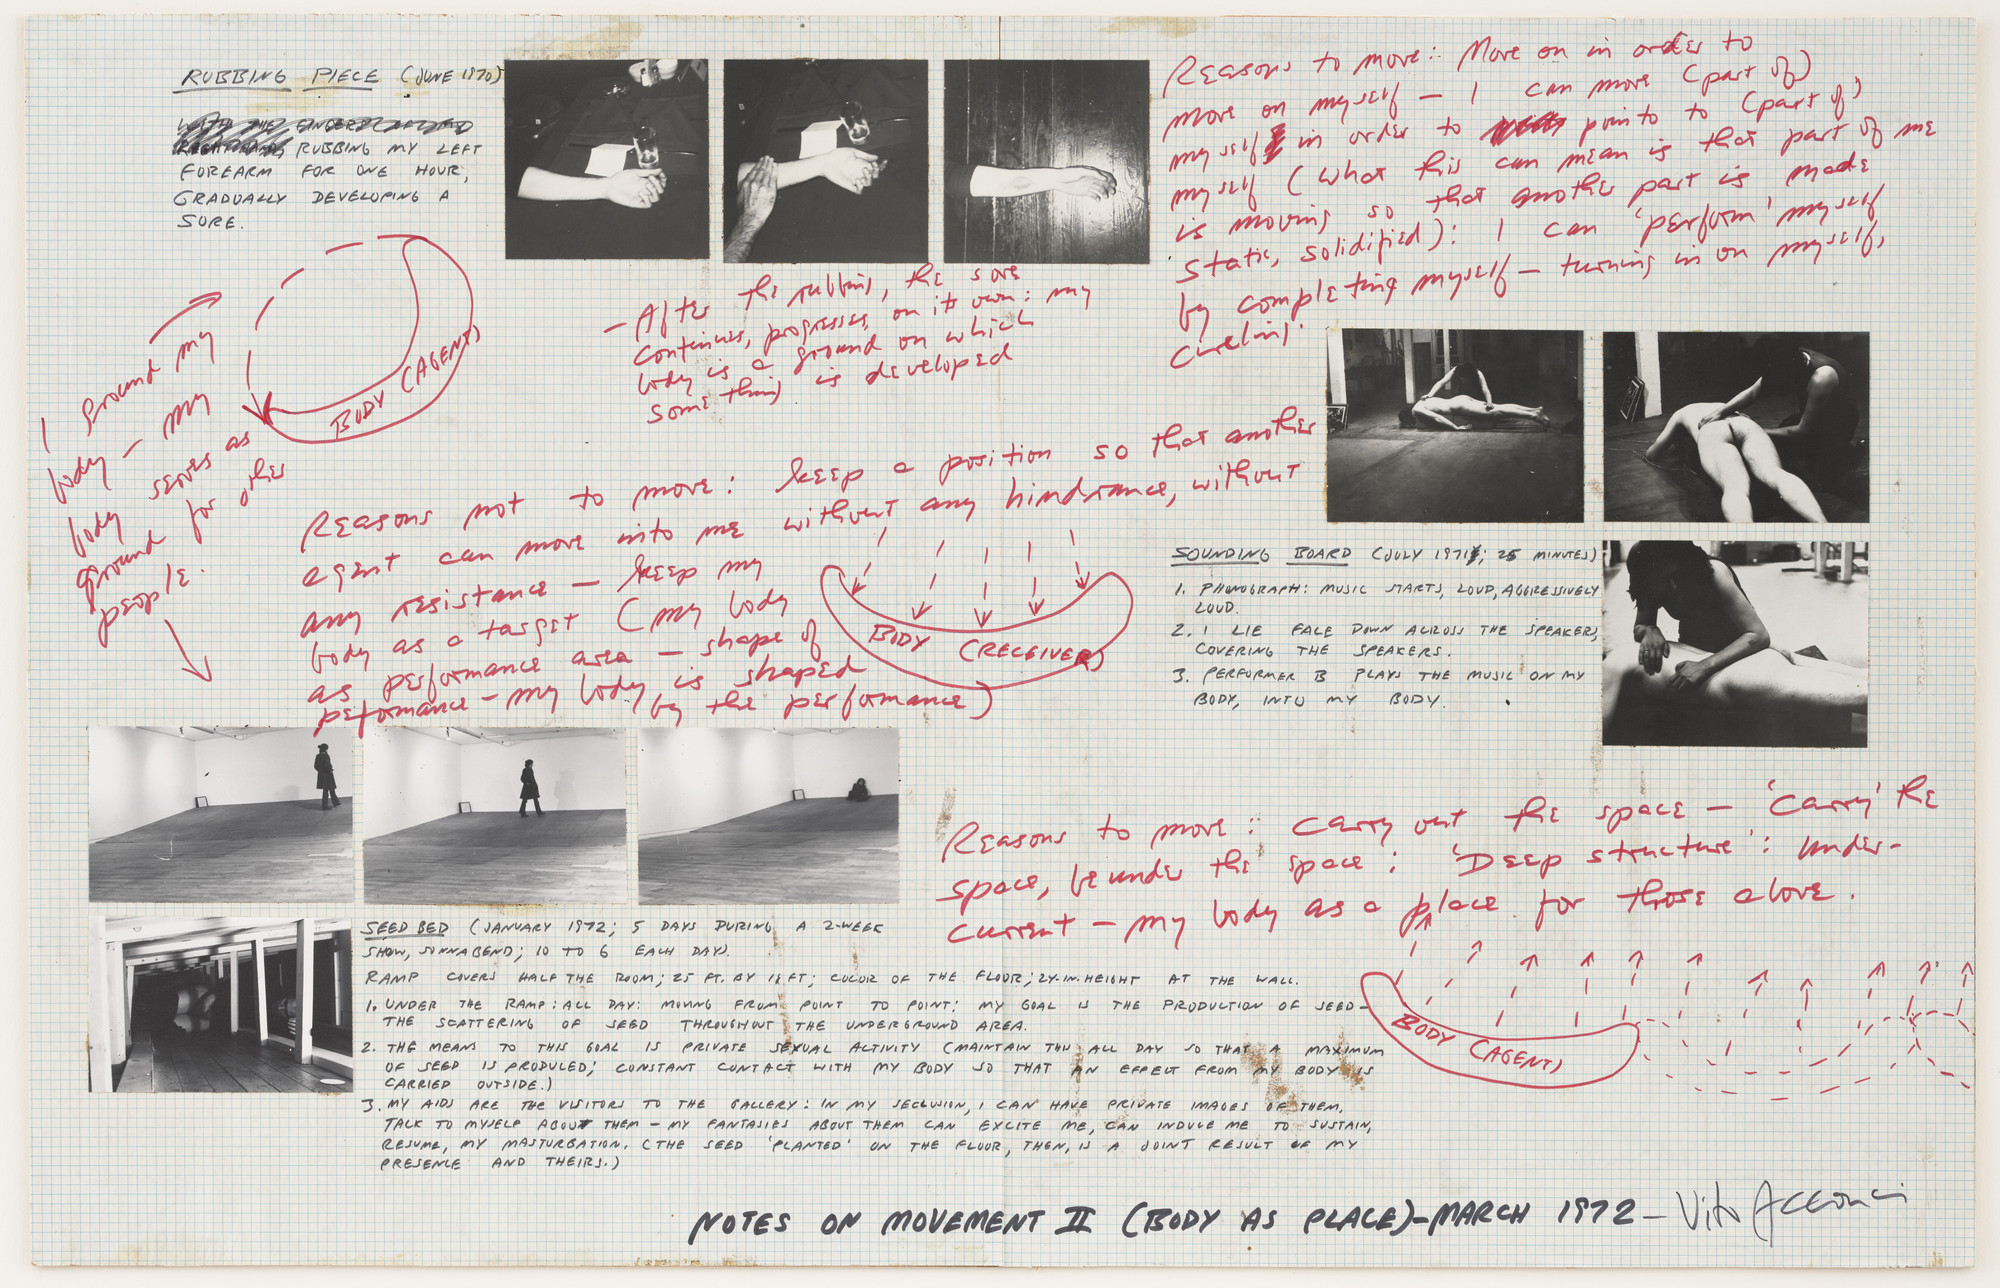 Vito Acconci. Notes on Movement II (Body as Place). March 1972